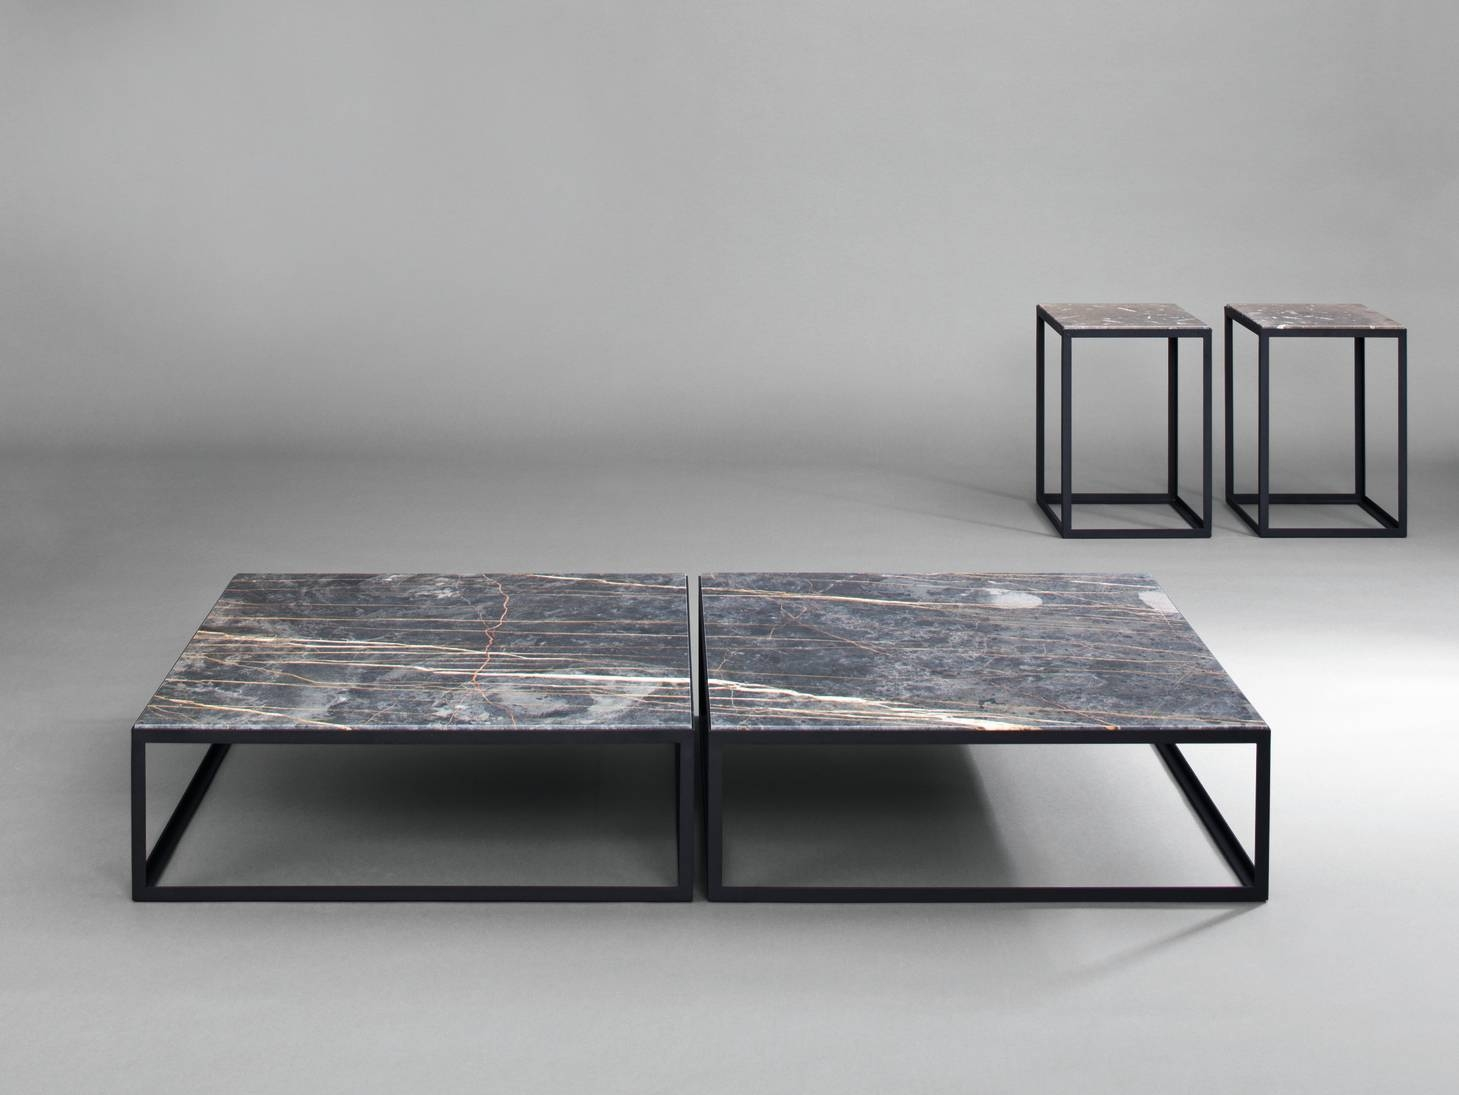 Low Black Square Coffee Table | Coffee Tables Decoration Pertaining To Square Low Coffee Tables (View 10 of 20)